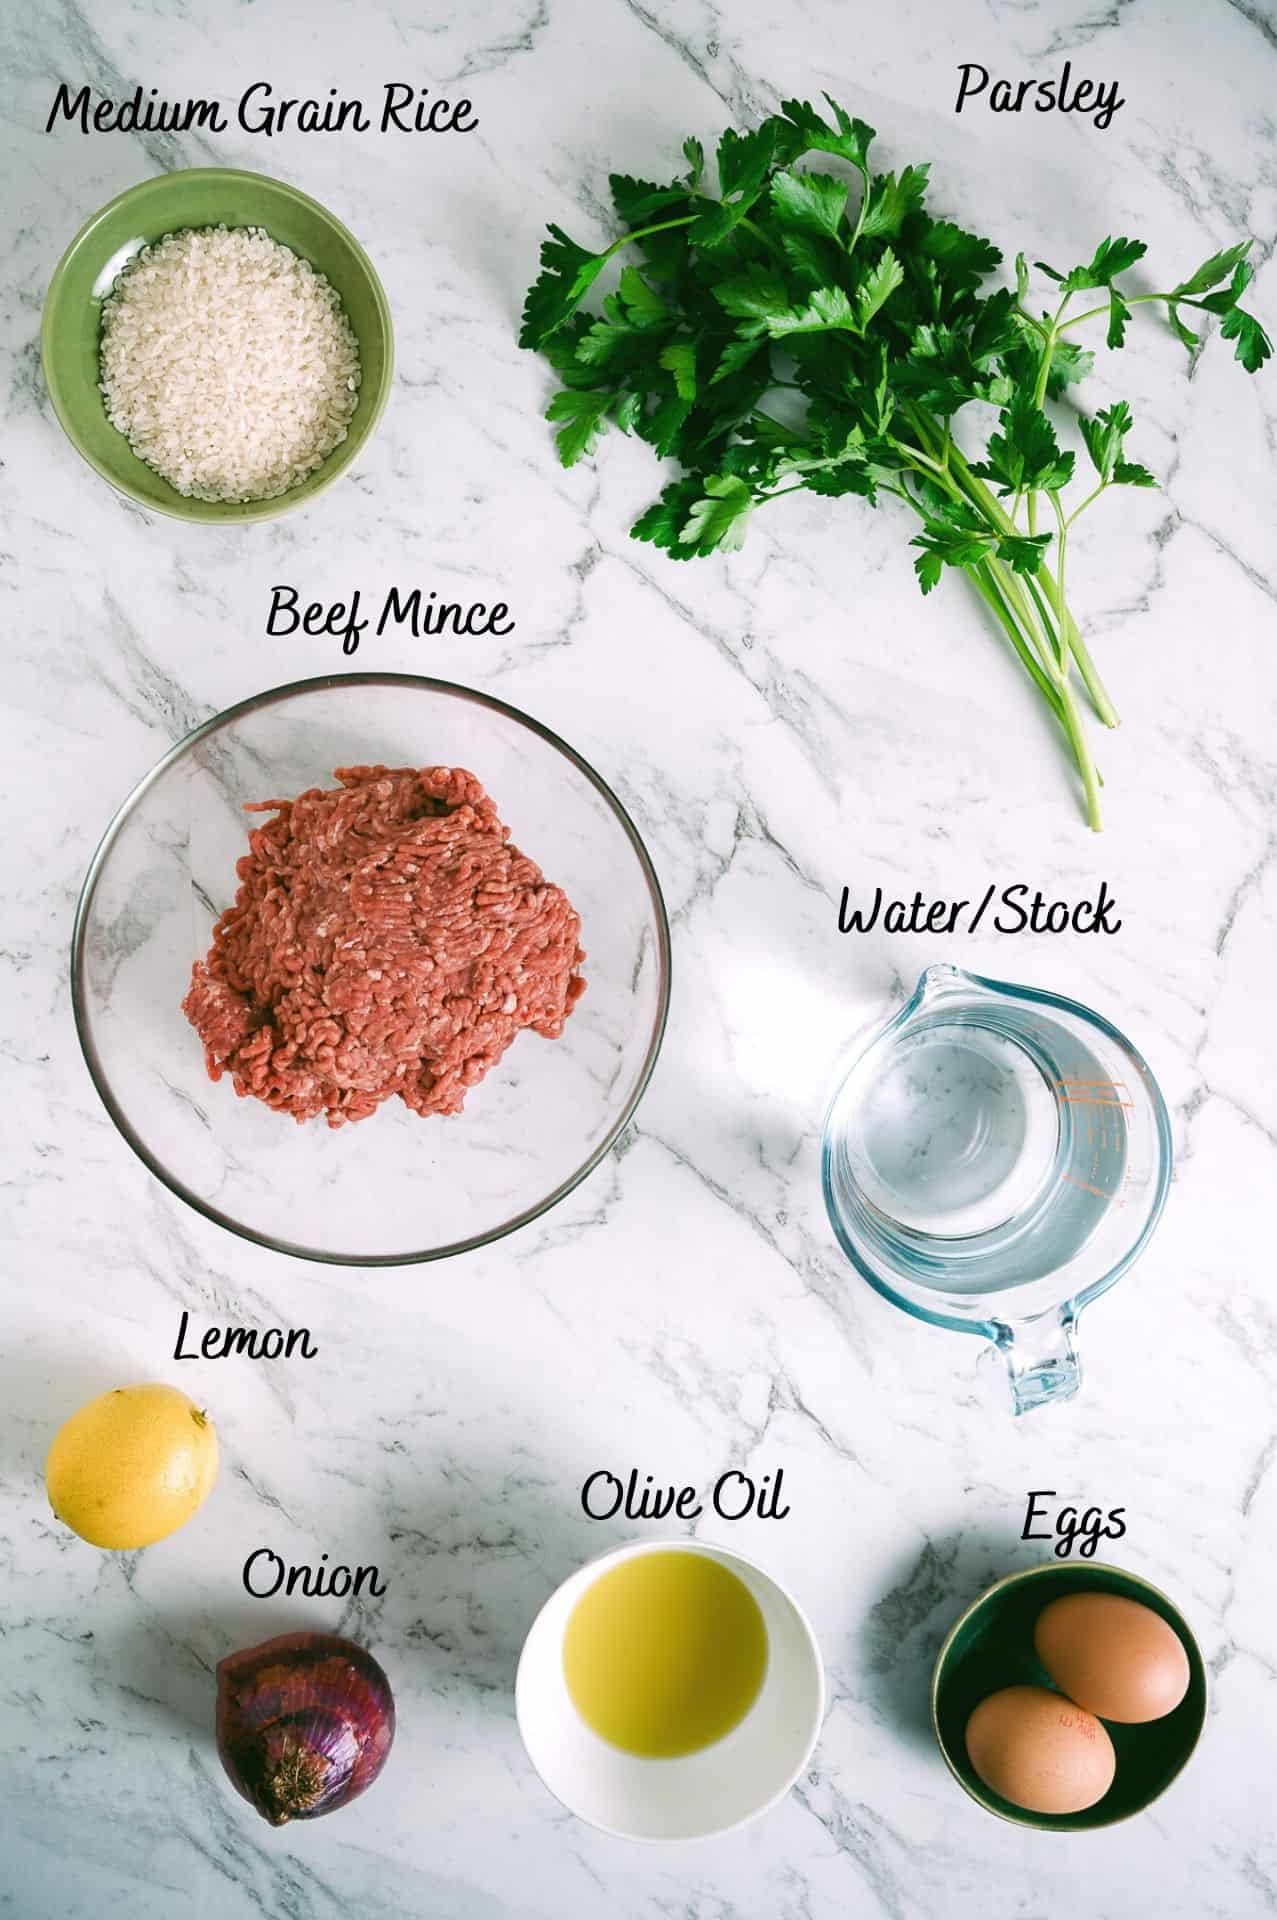 rice, parsley, ground beef, water, lemon, onion, olive oil and eggs laid out on a white table